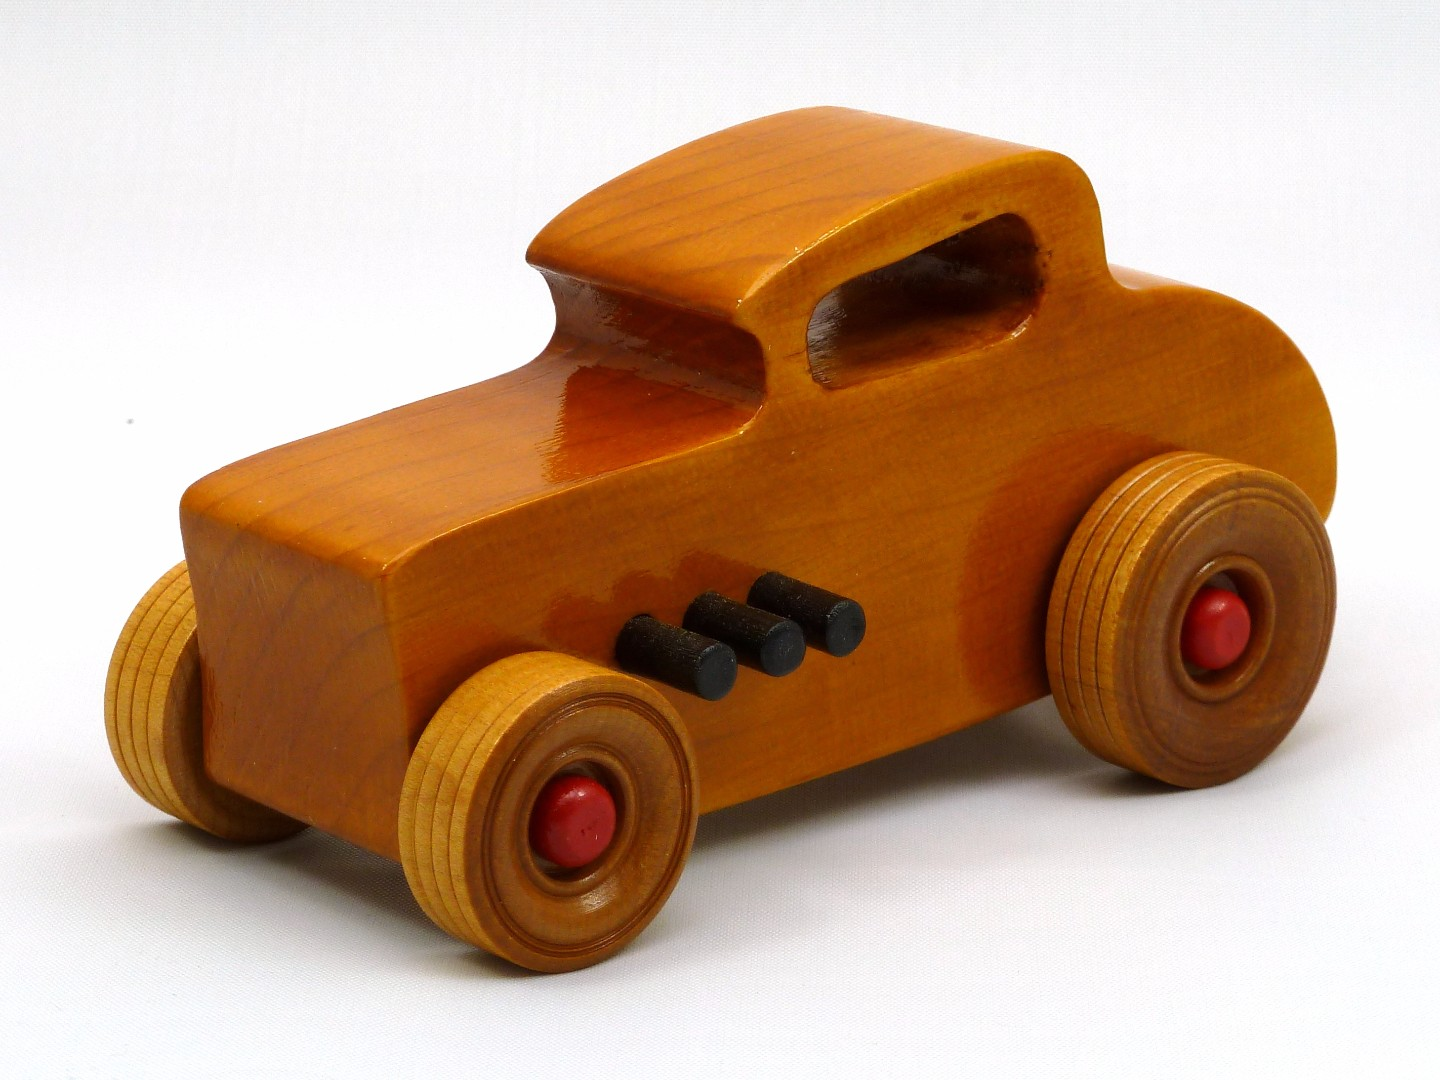 20170902-171438 Wooden Toy Car - Hot Rod Freaky Ford - 32 Deuce Coupe - Pine - Amber Shellac - Red.jpg